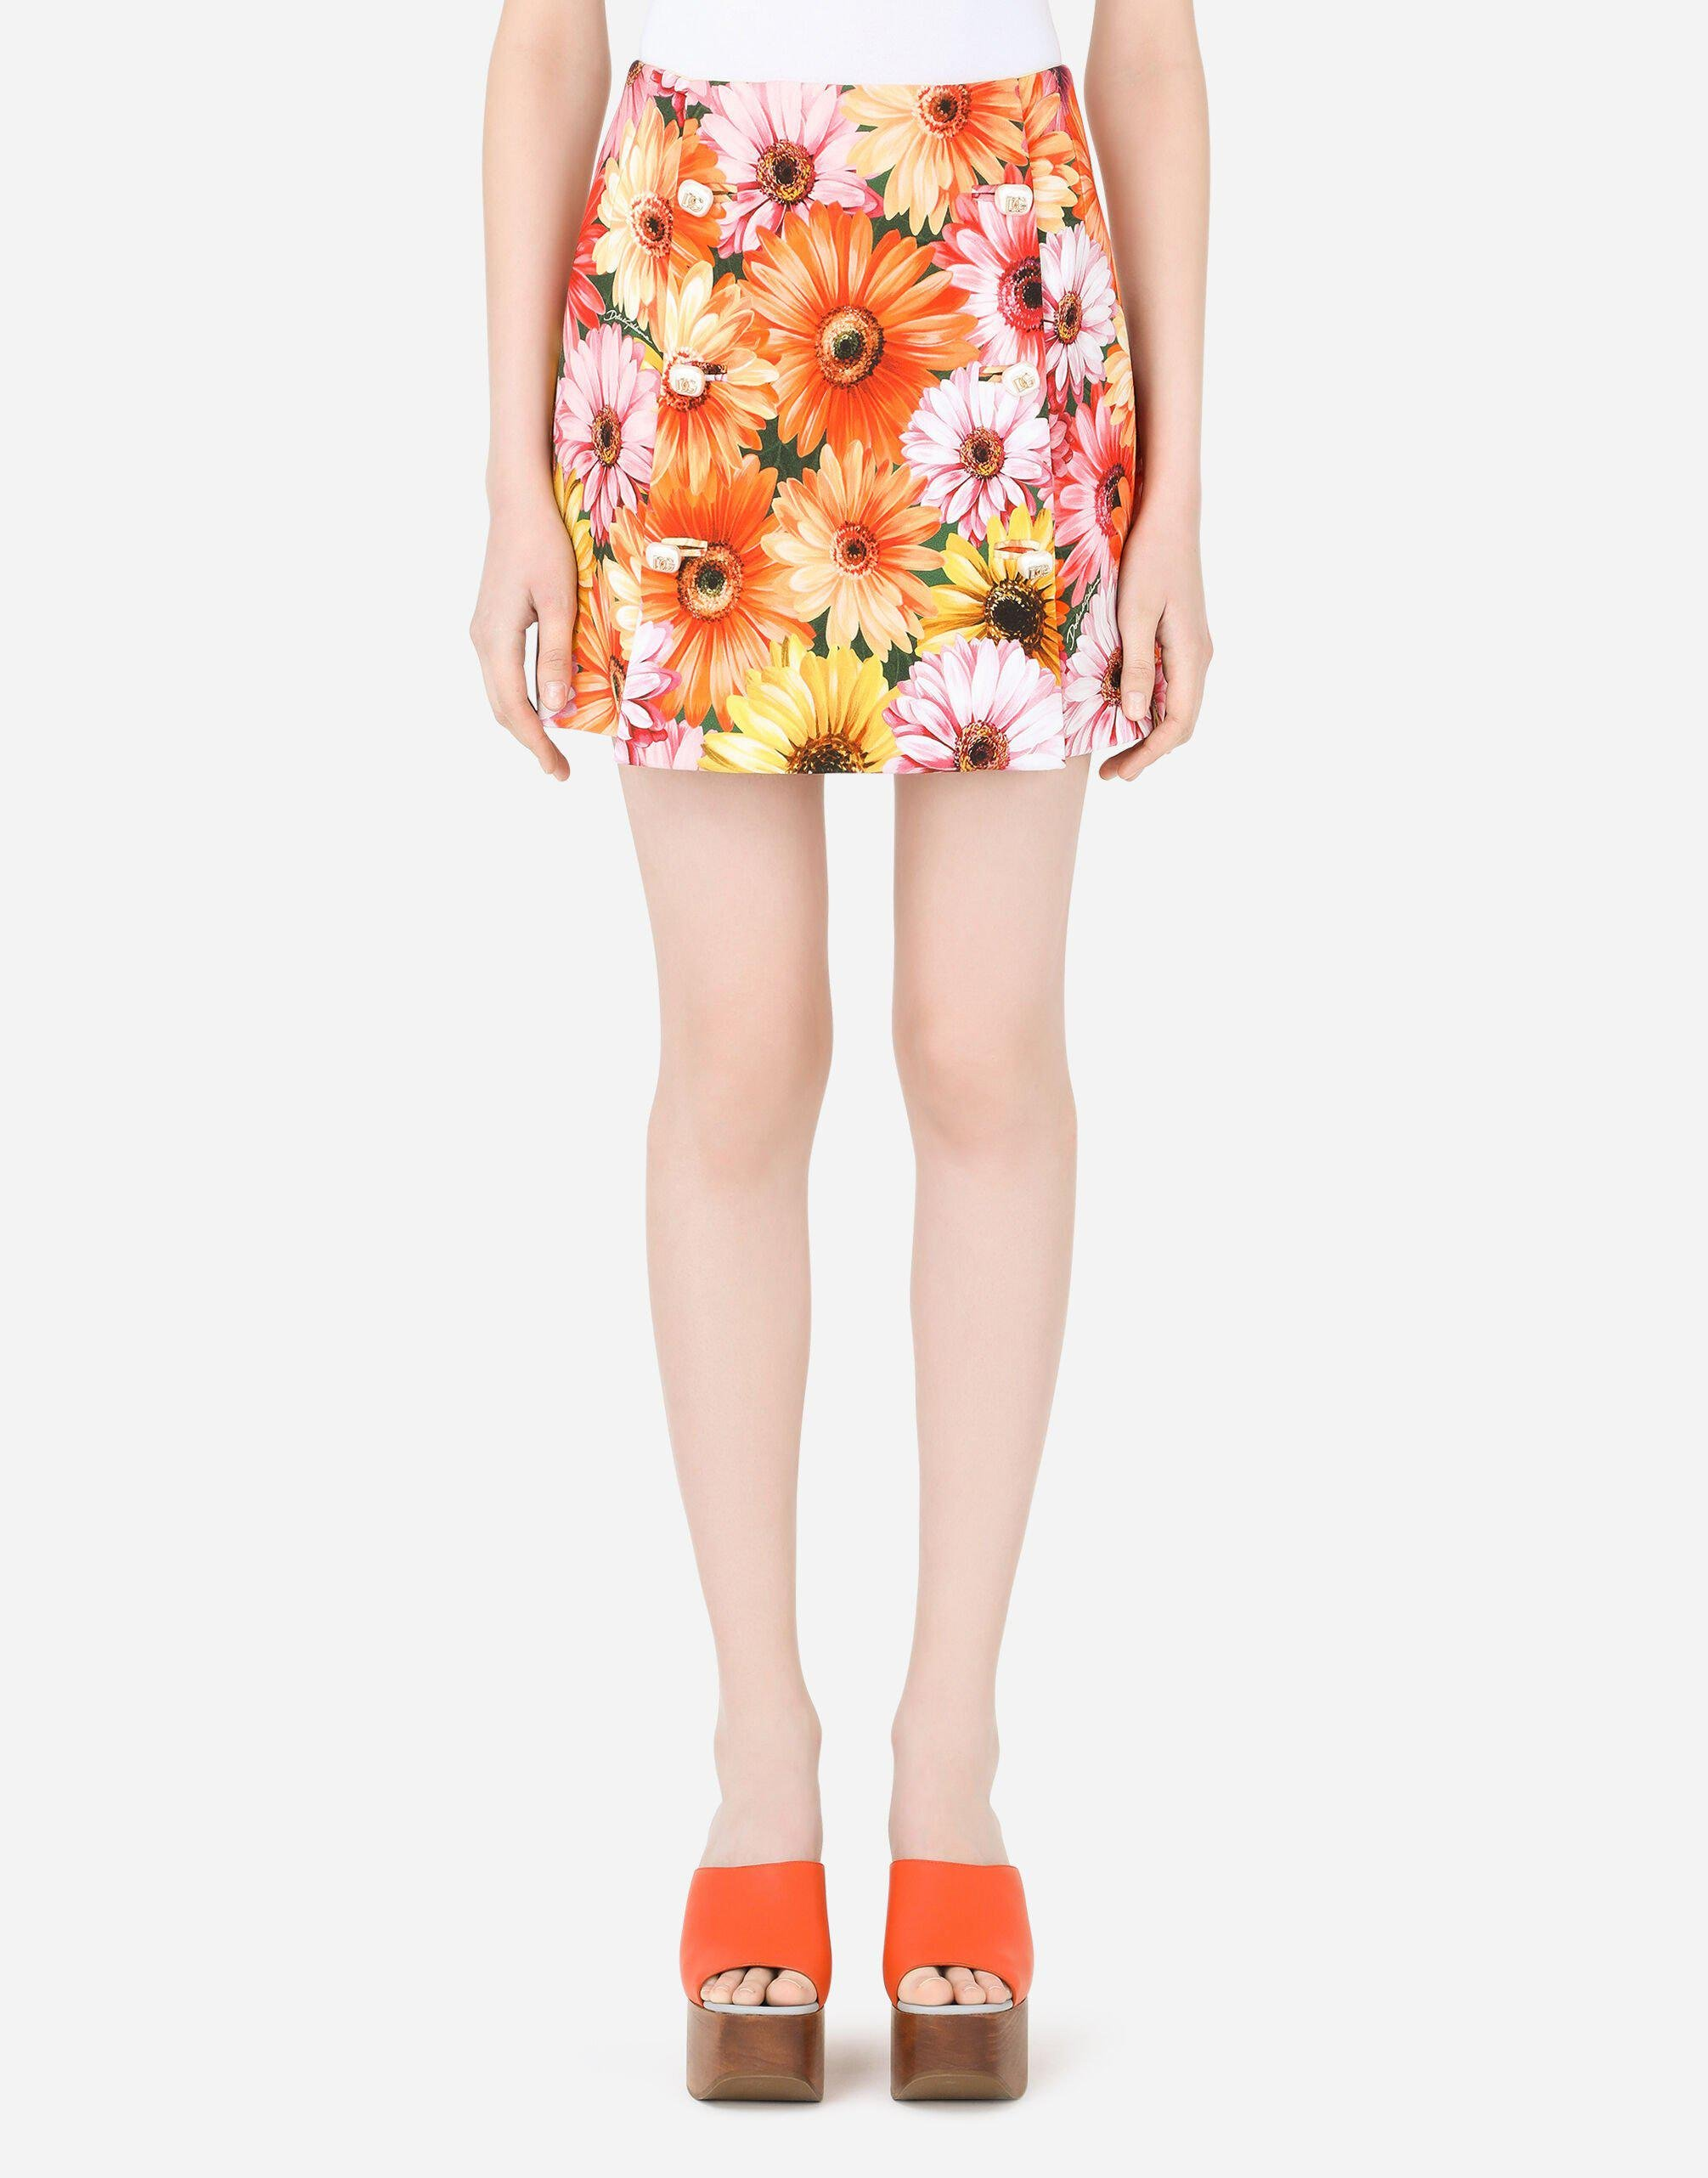 Cady miniskirt with gerbera-daisy print and decorative pearl DG buttons